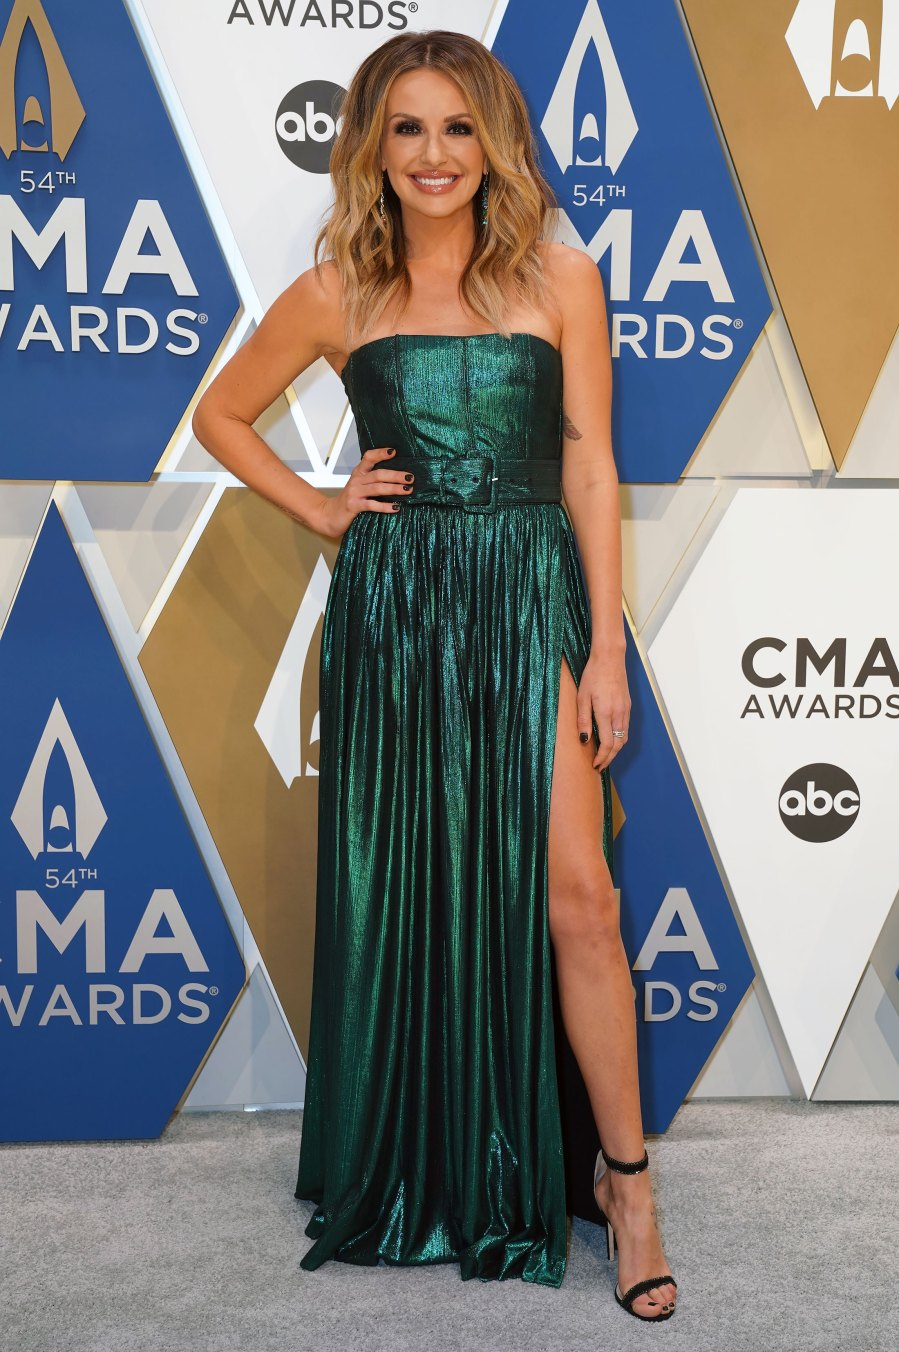 CMA Awards 2020 Red Carpet Arrivals - Carly Pearce